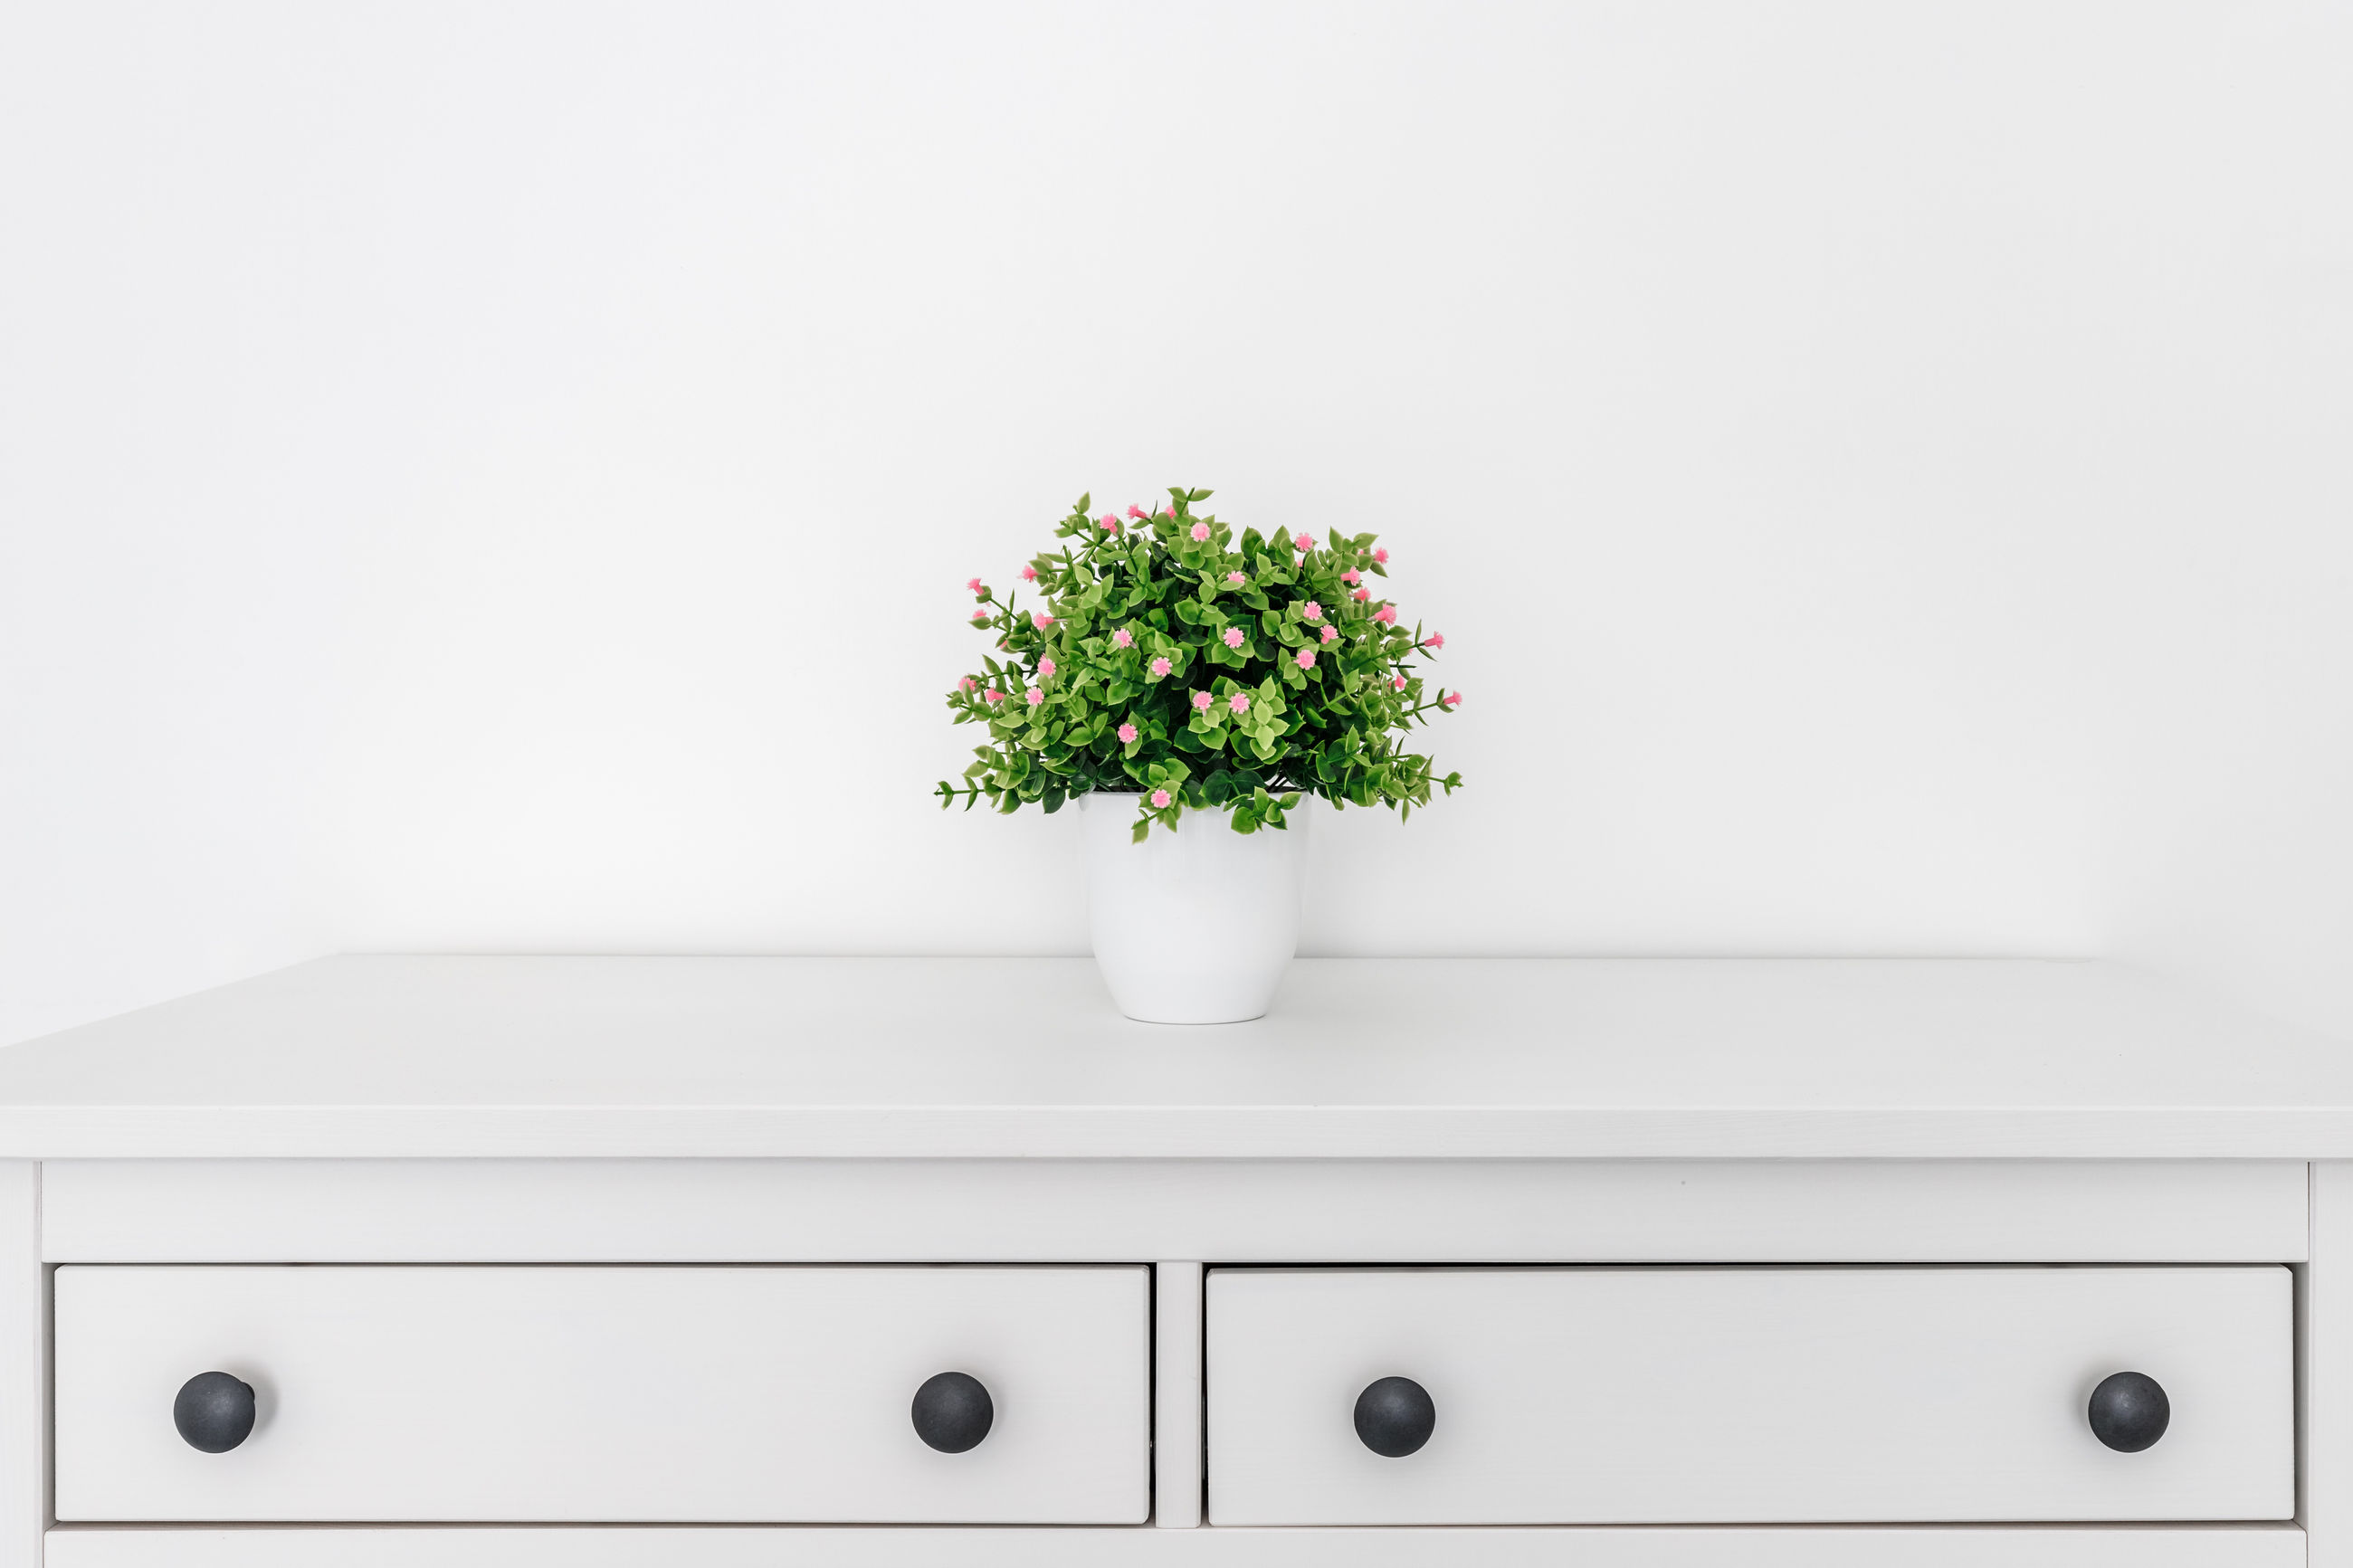 WHITE POTTED PLANT AGAINST WALL